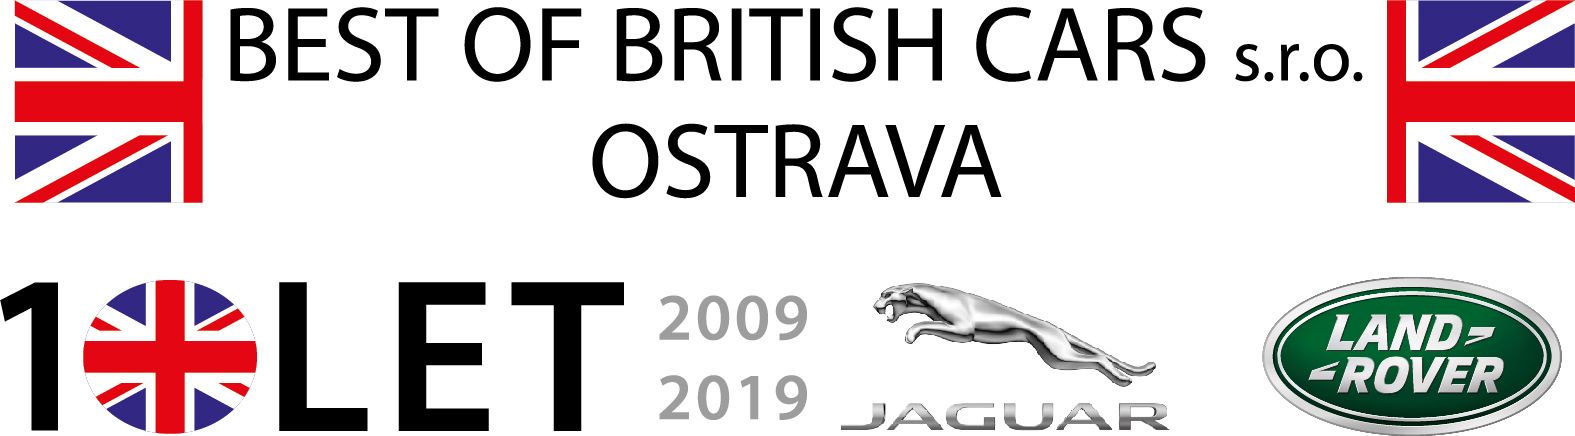 Best of British Cars Ostrava